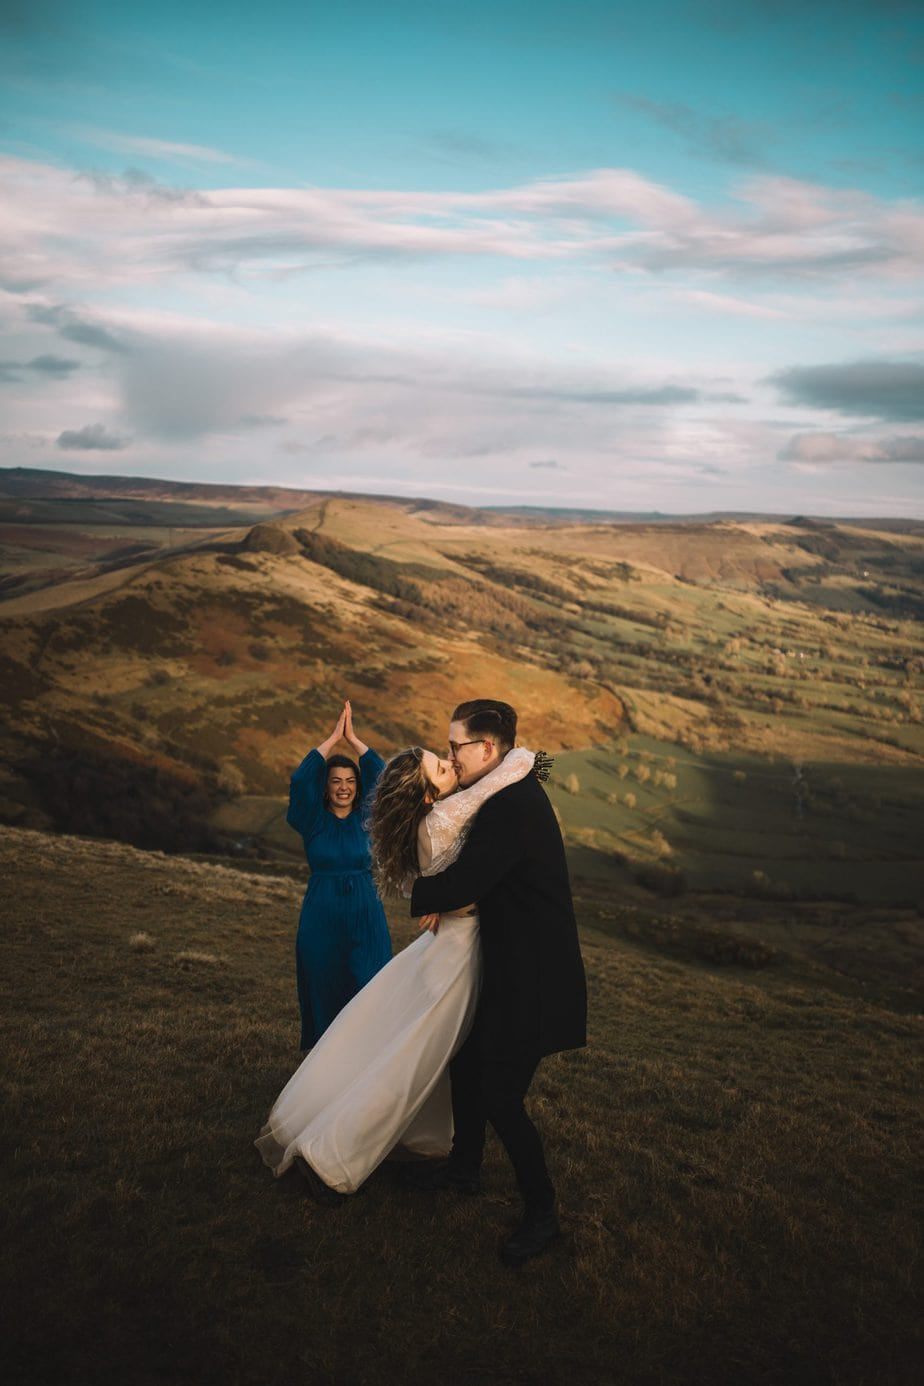 Bride and groom having their first kiss after an humanist elopement ceremony on Mam Tor in the peak district. Celebrant clapping and celebrating behind them.